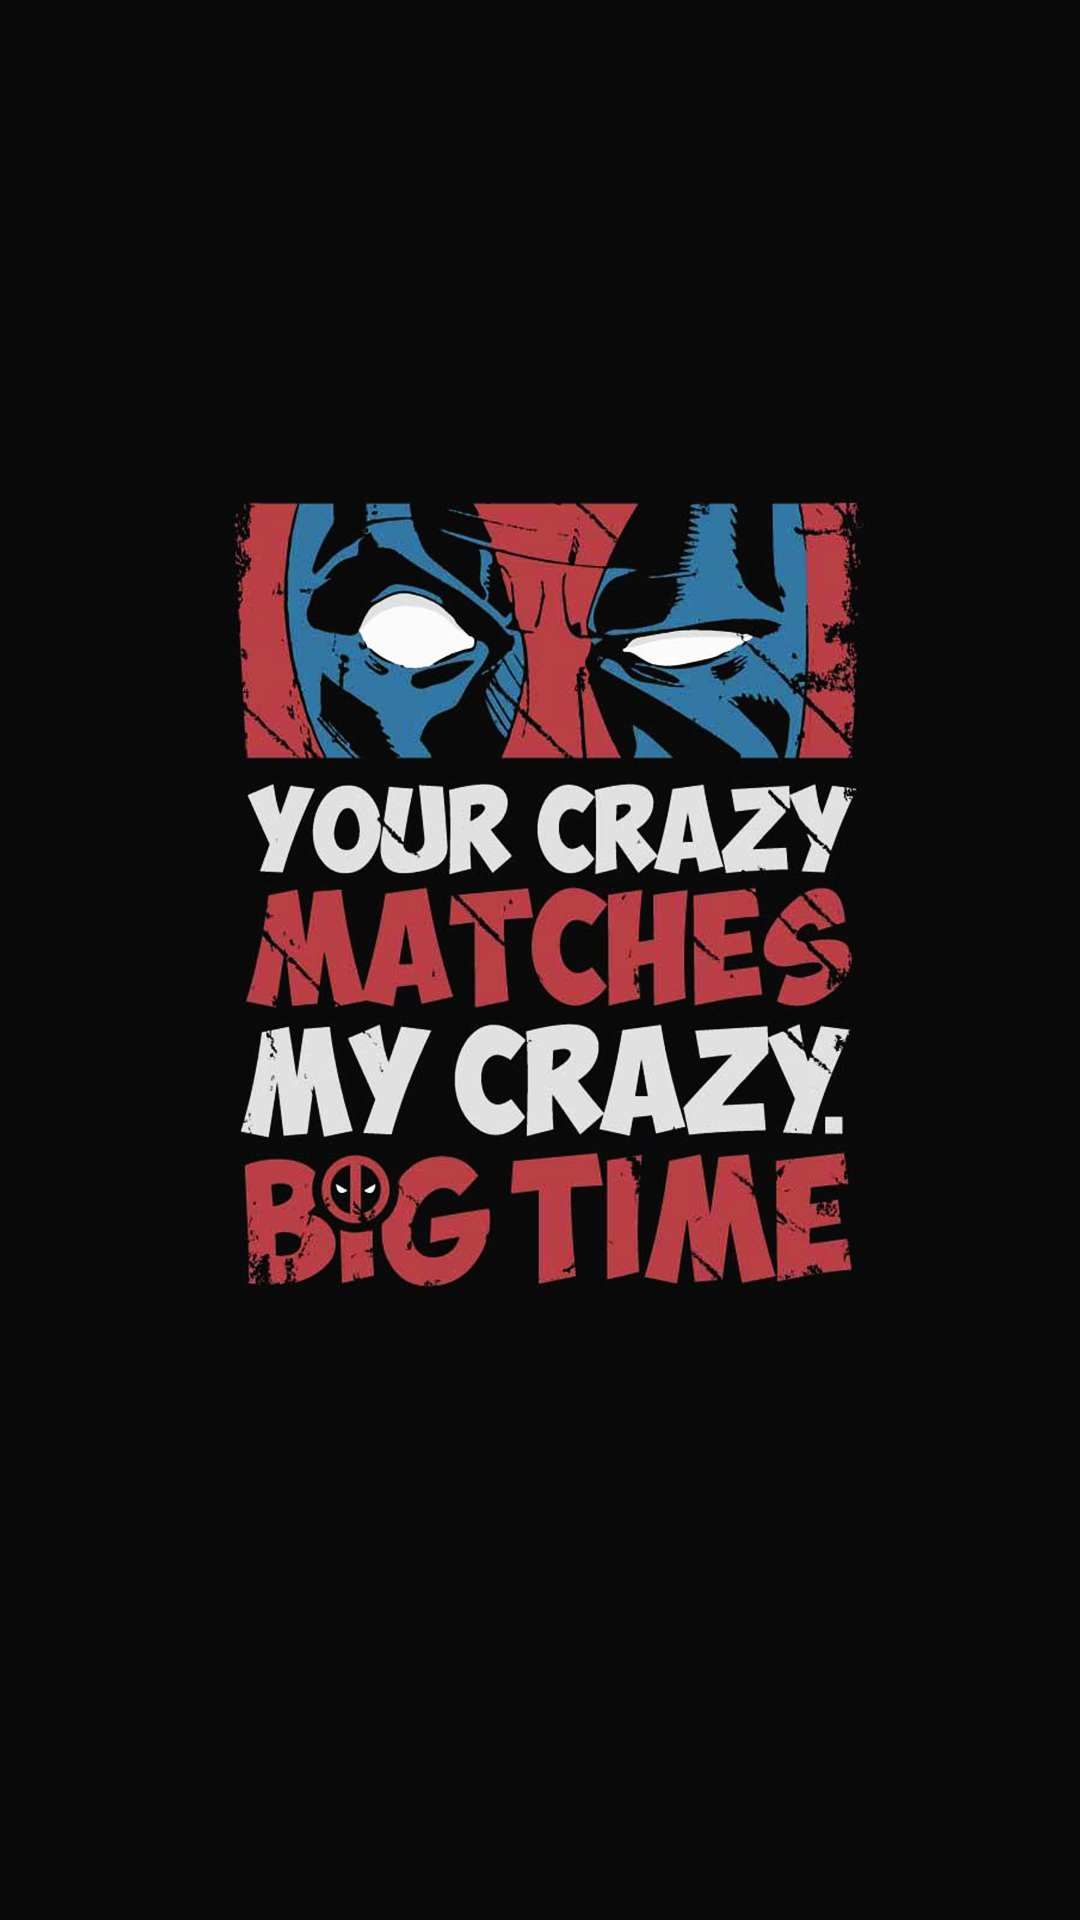 Deadpool Crazy Wallpaper Check More At Https Phonewallpaper Net Deadpool Crazy Wallp Deadpool Wallpaper Iphone Crazy Wallpaper Deadpool Wallpaper Backgrounds